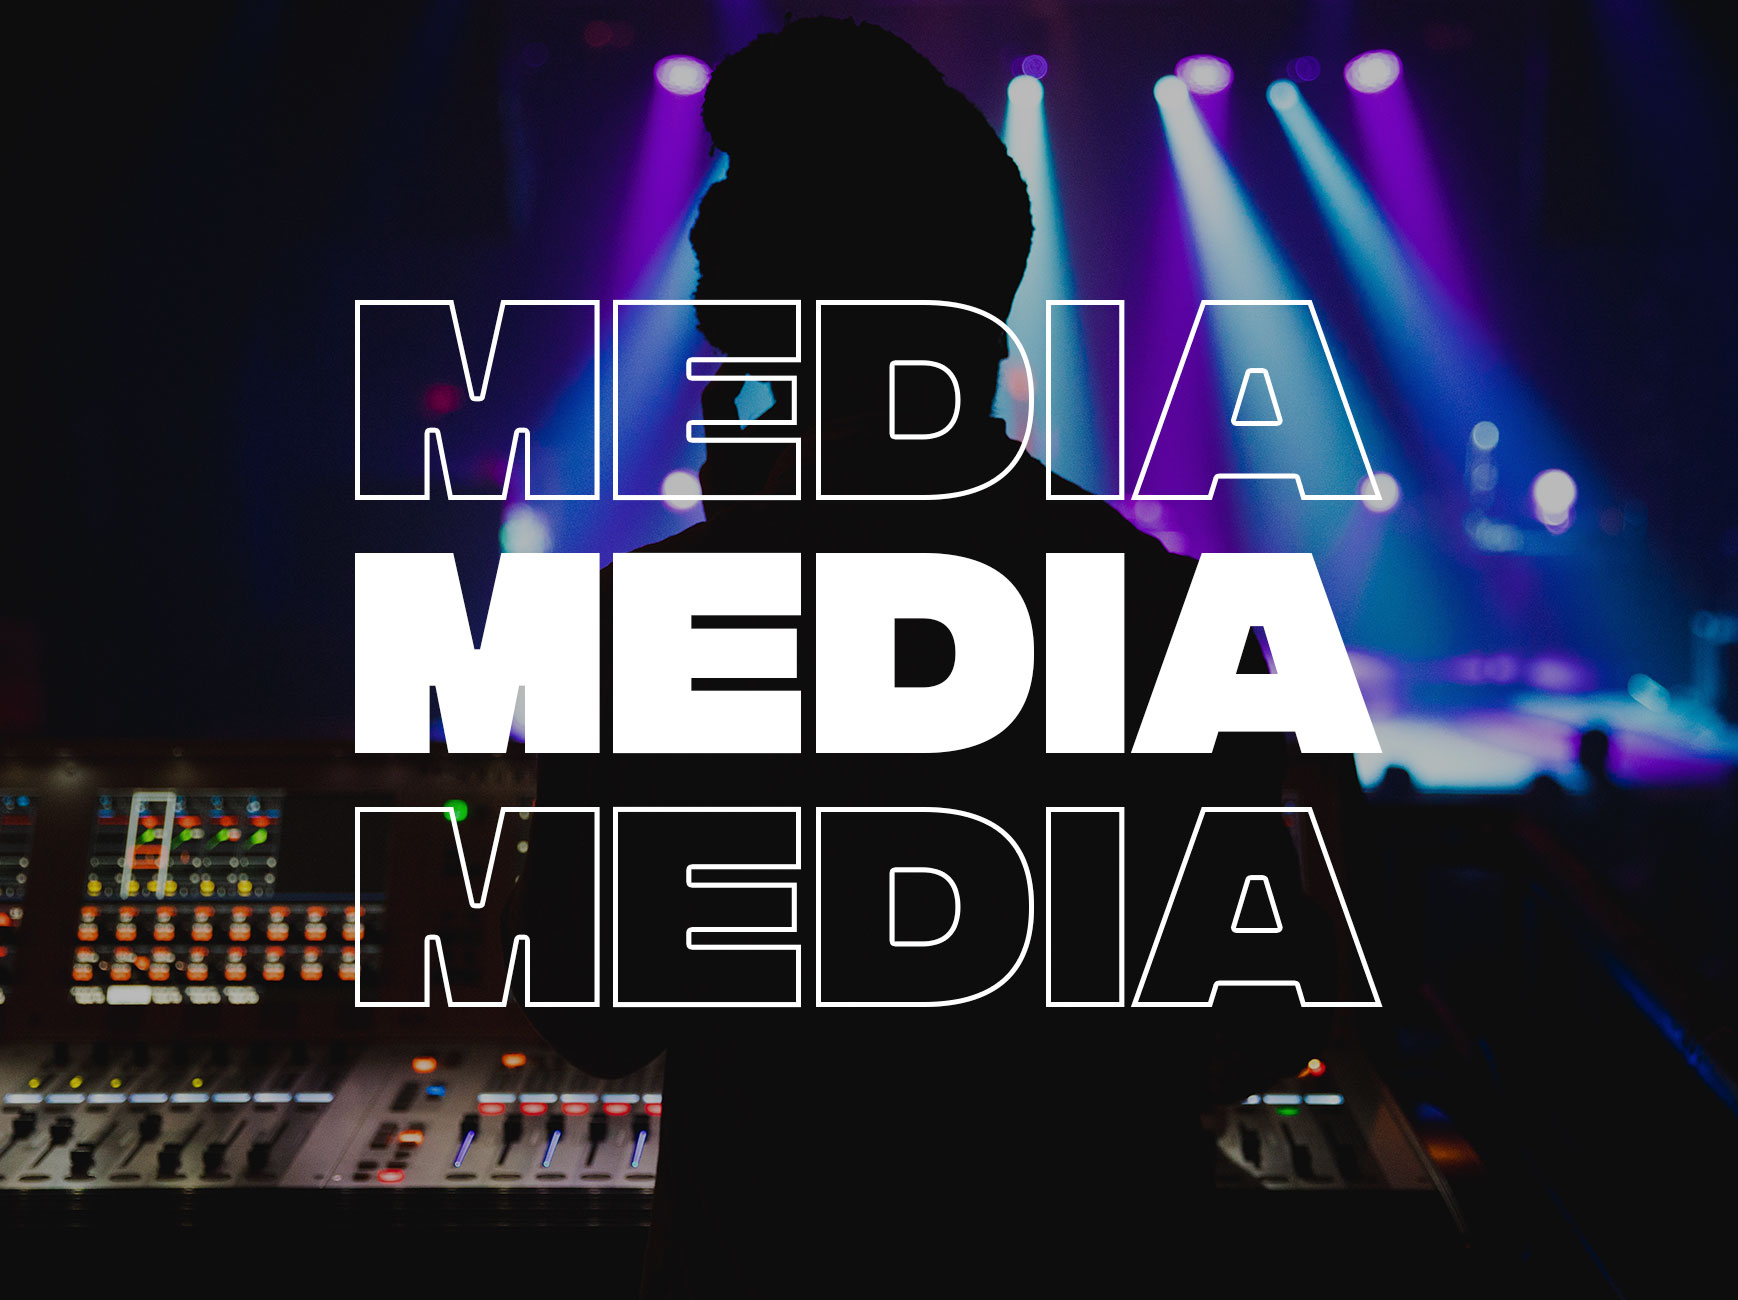 MEDIA  Operating the audio & visual systems to make it happen!   Time commitment: 4:30pm early arrival    Requirements: Experience with A/V equipment